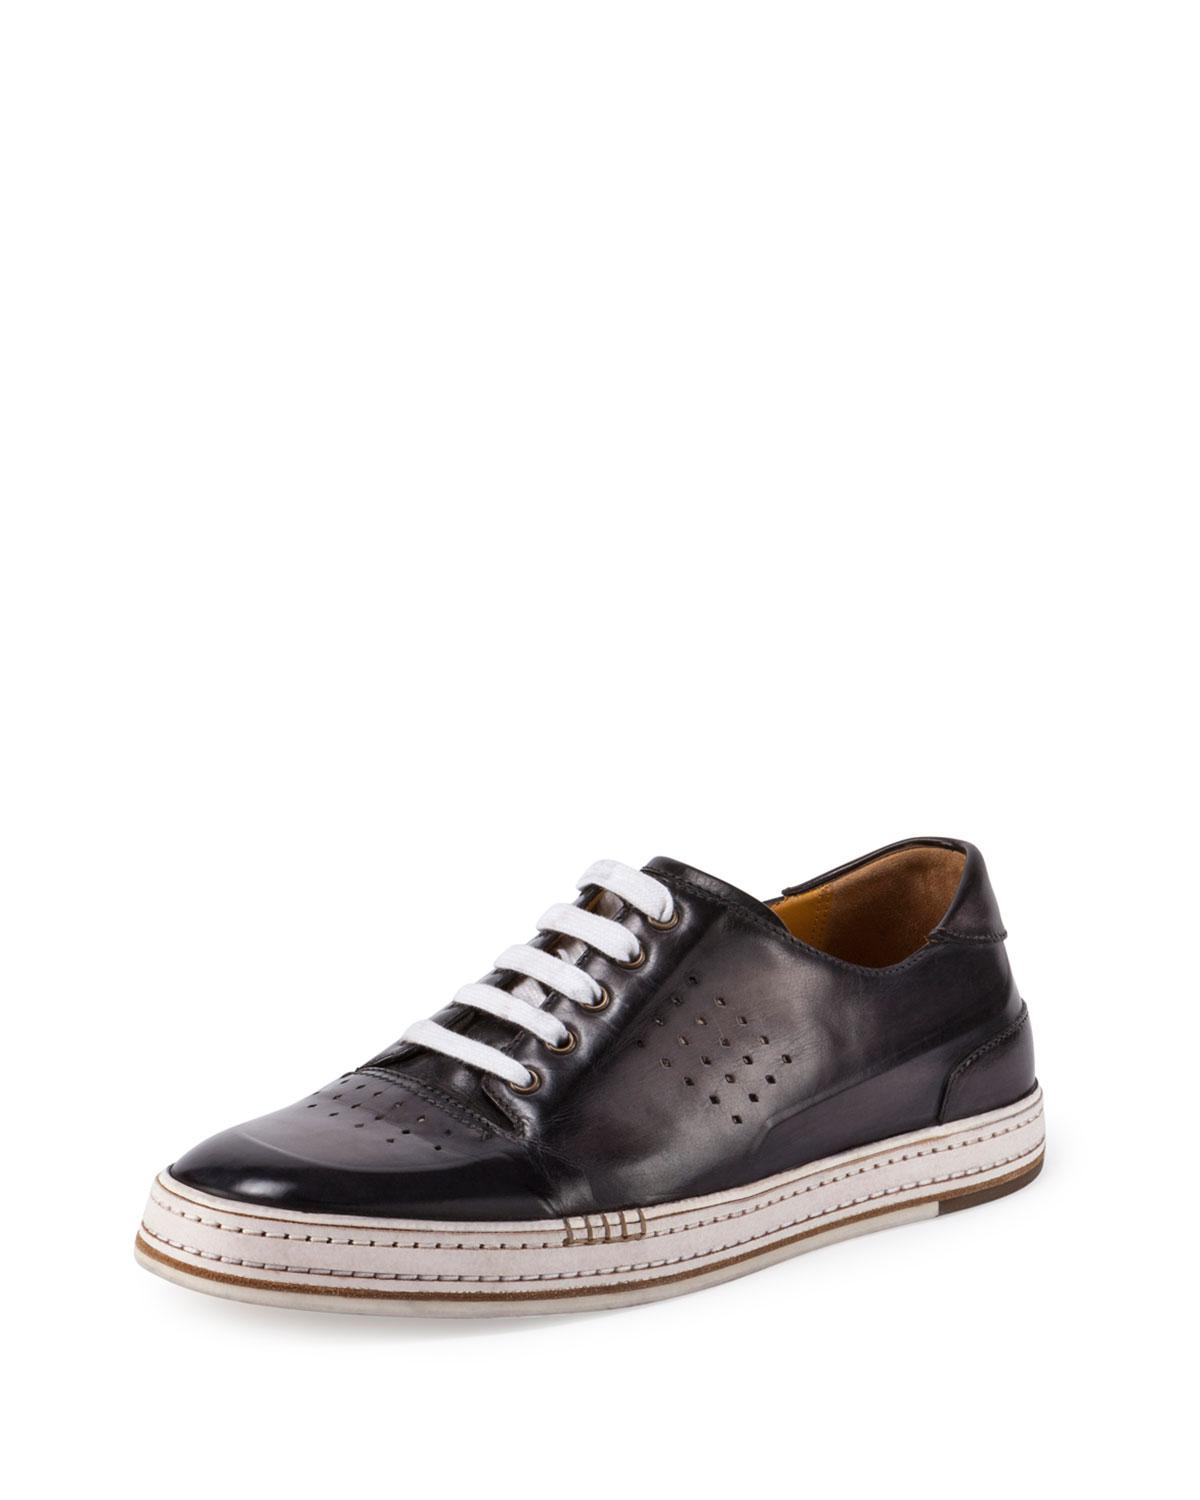 Playtime Leather Sneakers Berluti Official Site Sale Original Cheap Fashion Style Discount Get To Buy ORUTv2